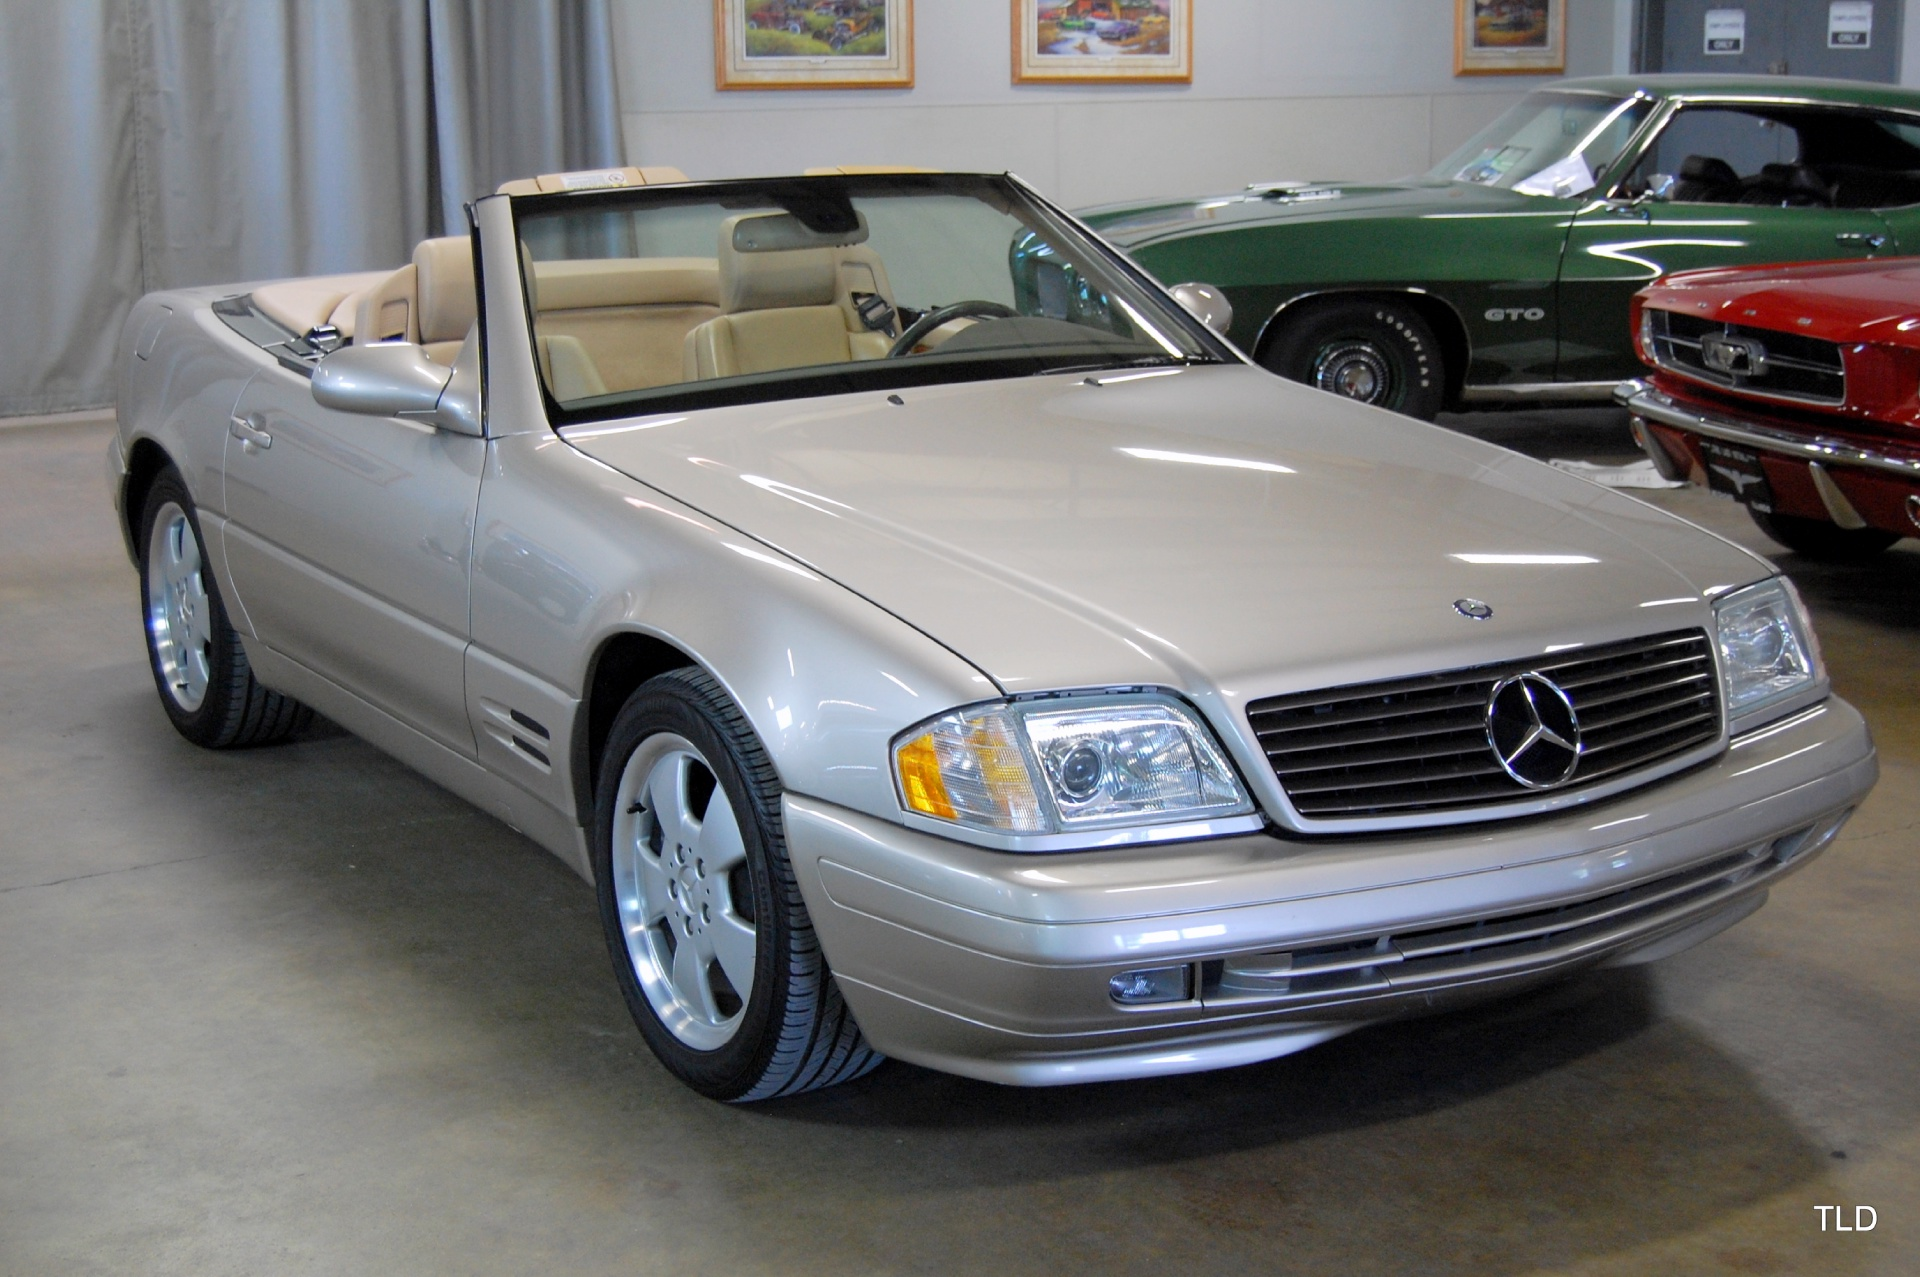 1999 Mercedes Benz Sl Class Sl500 C 790 on vehicle trunk storage